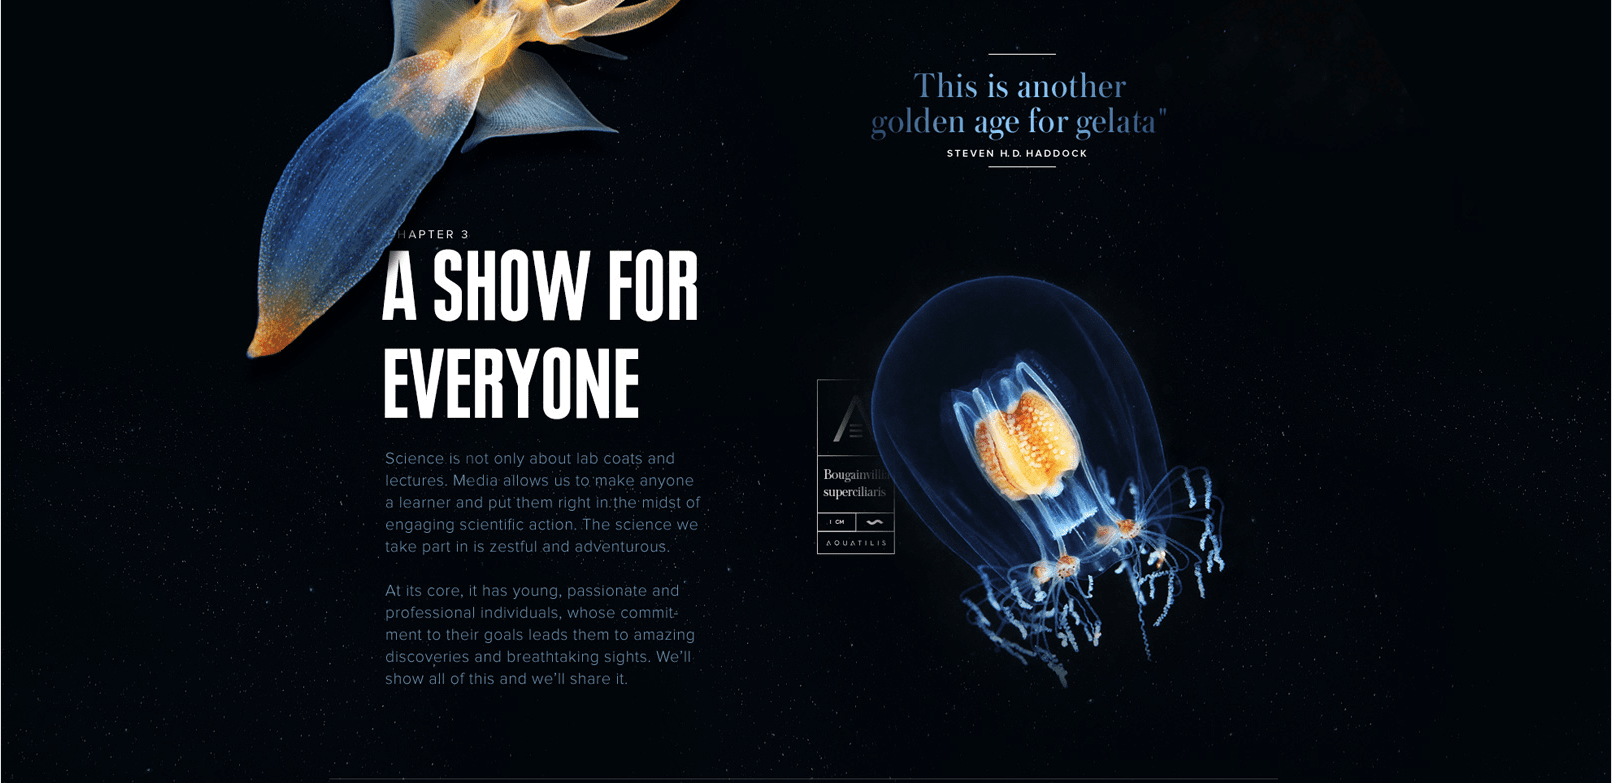 Aquatilis - Using interactive storytelling to share the journey of an undersea expedition.